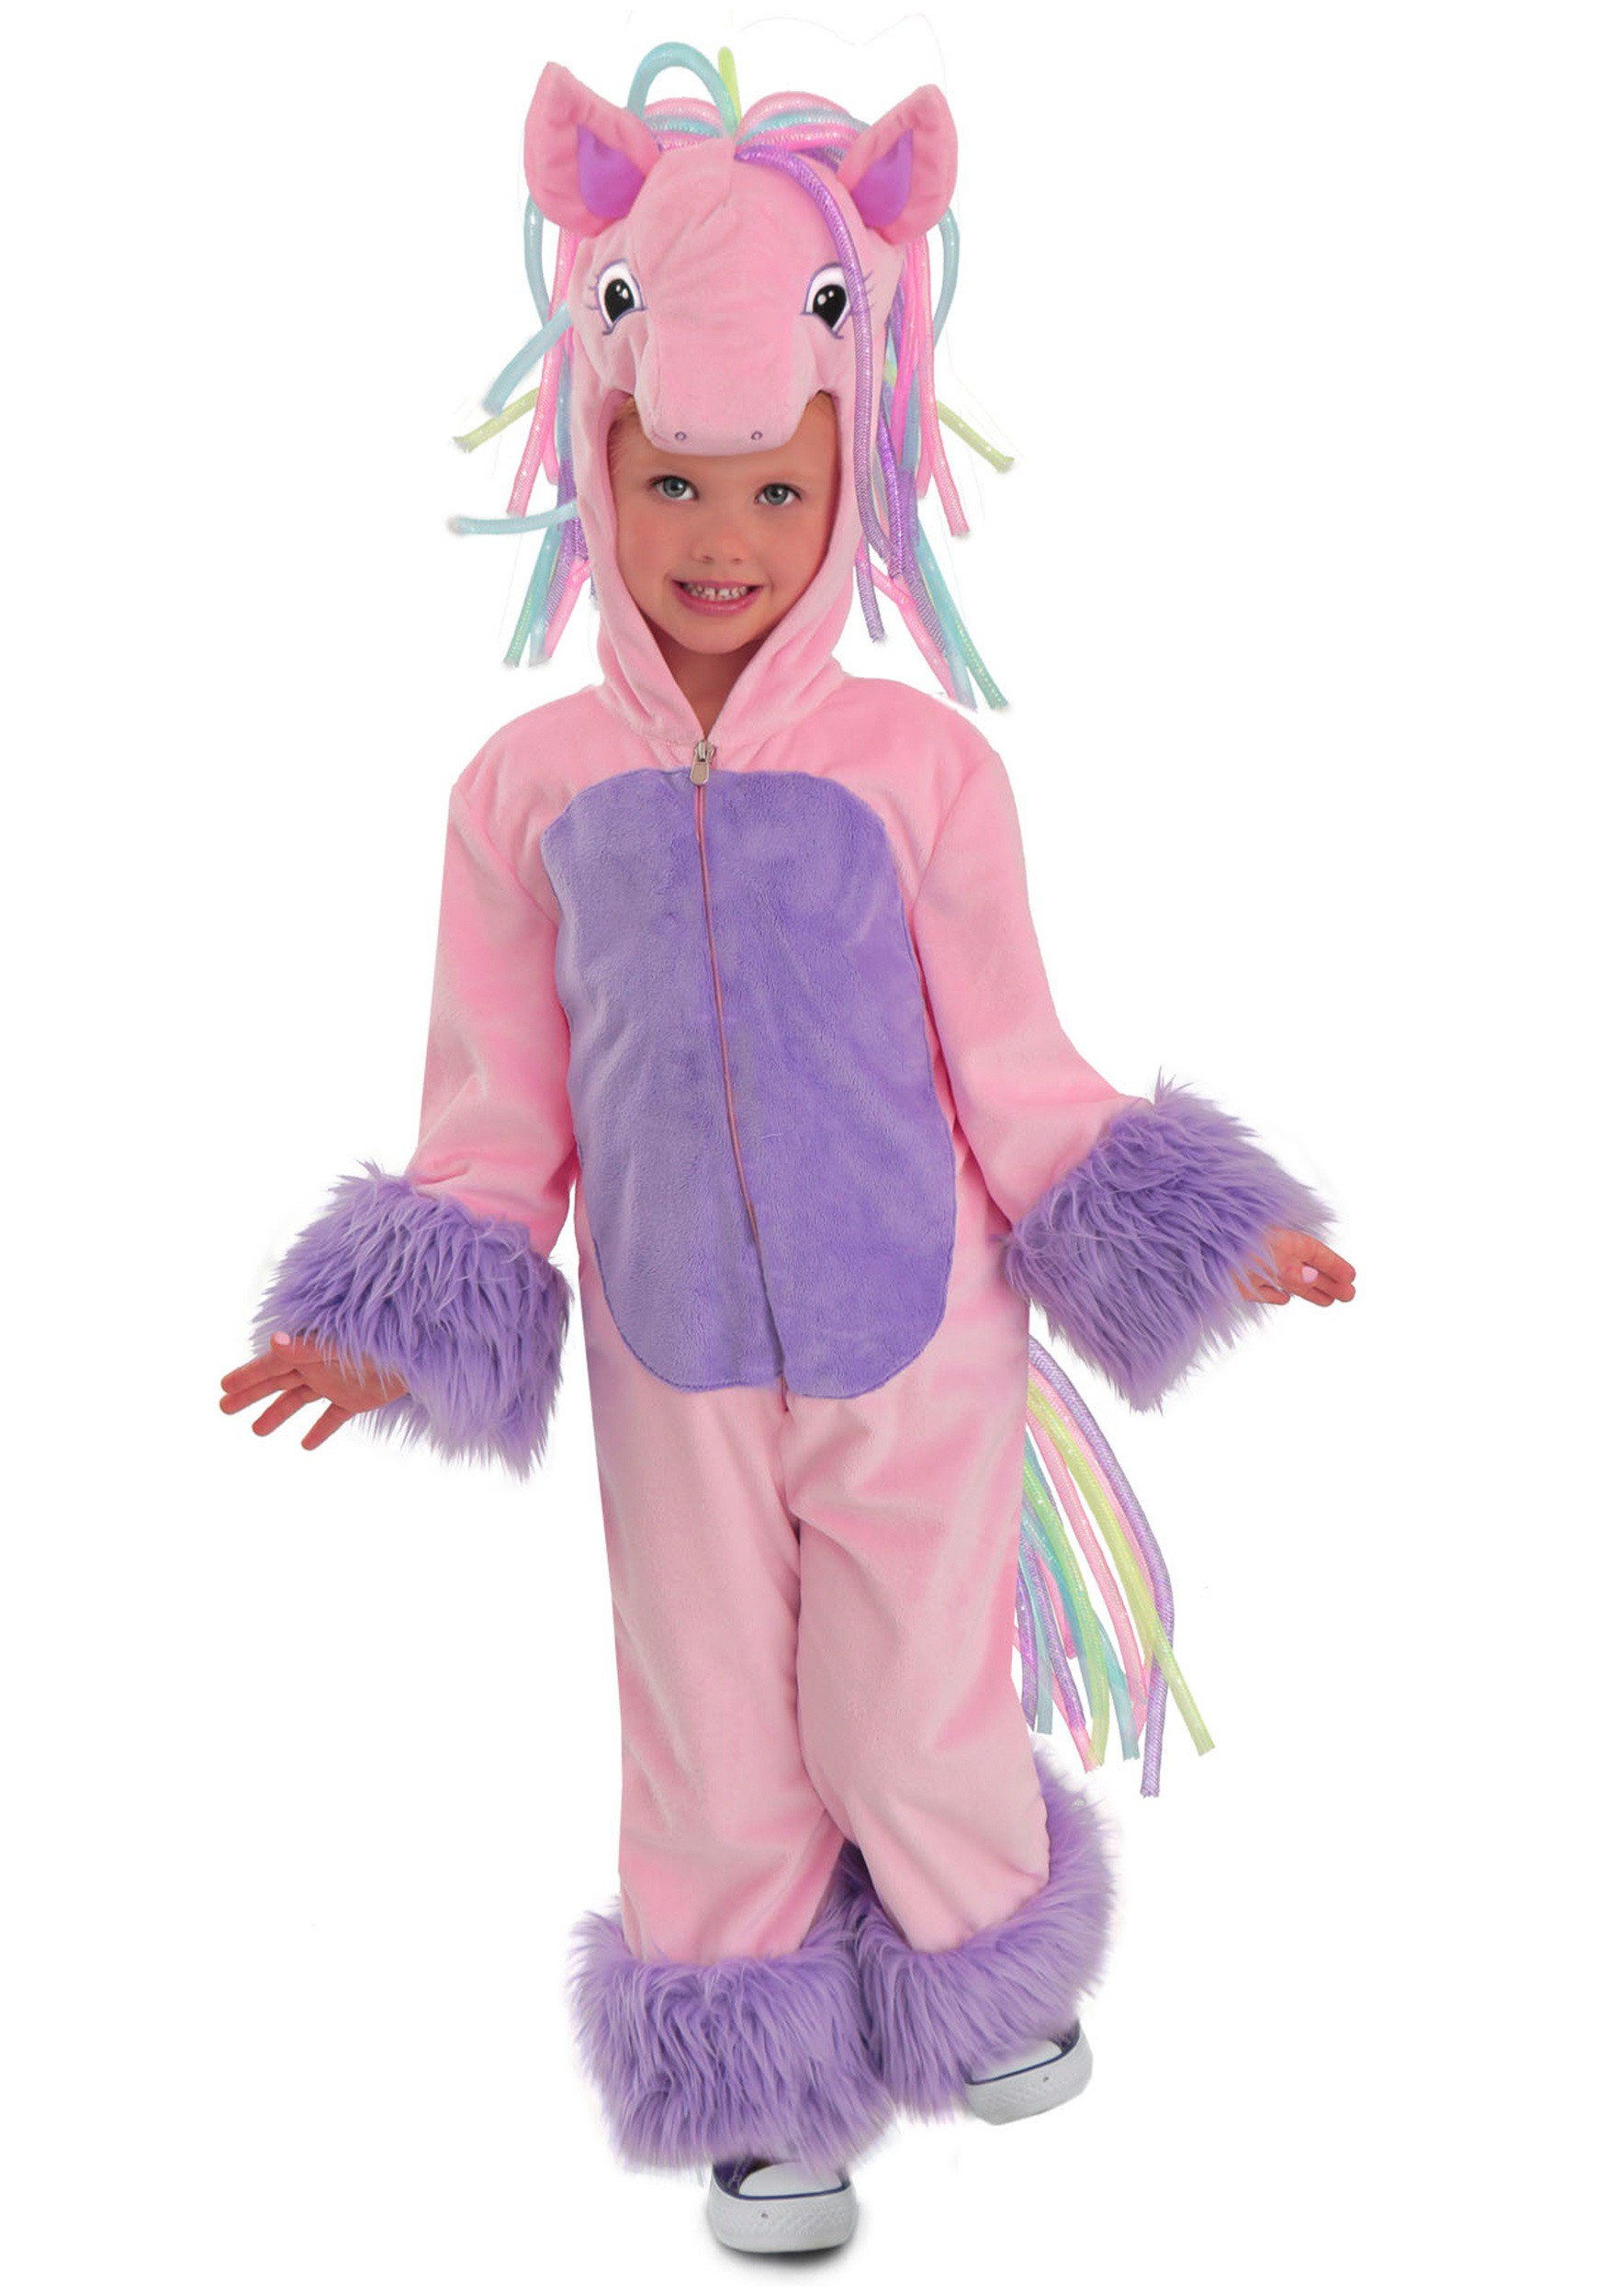 Rainbow Pony Costume For Kids  sc 1 st  Fun.com & Child Rainbow Pony Costume